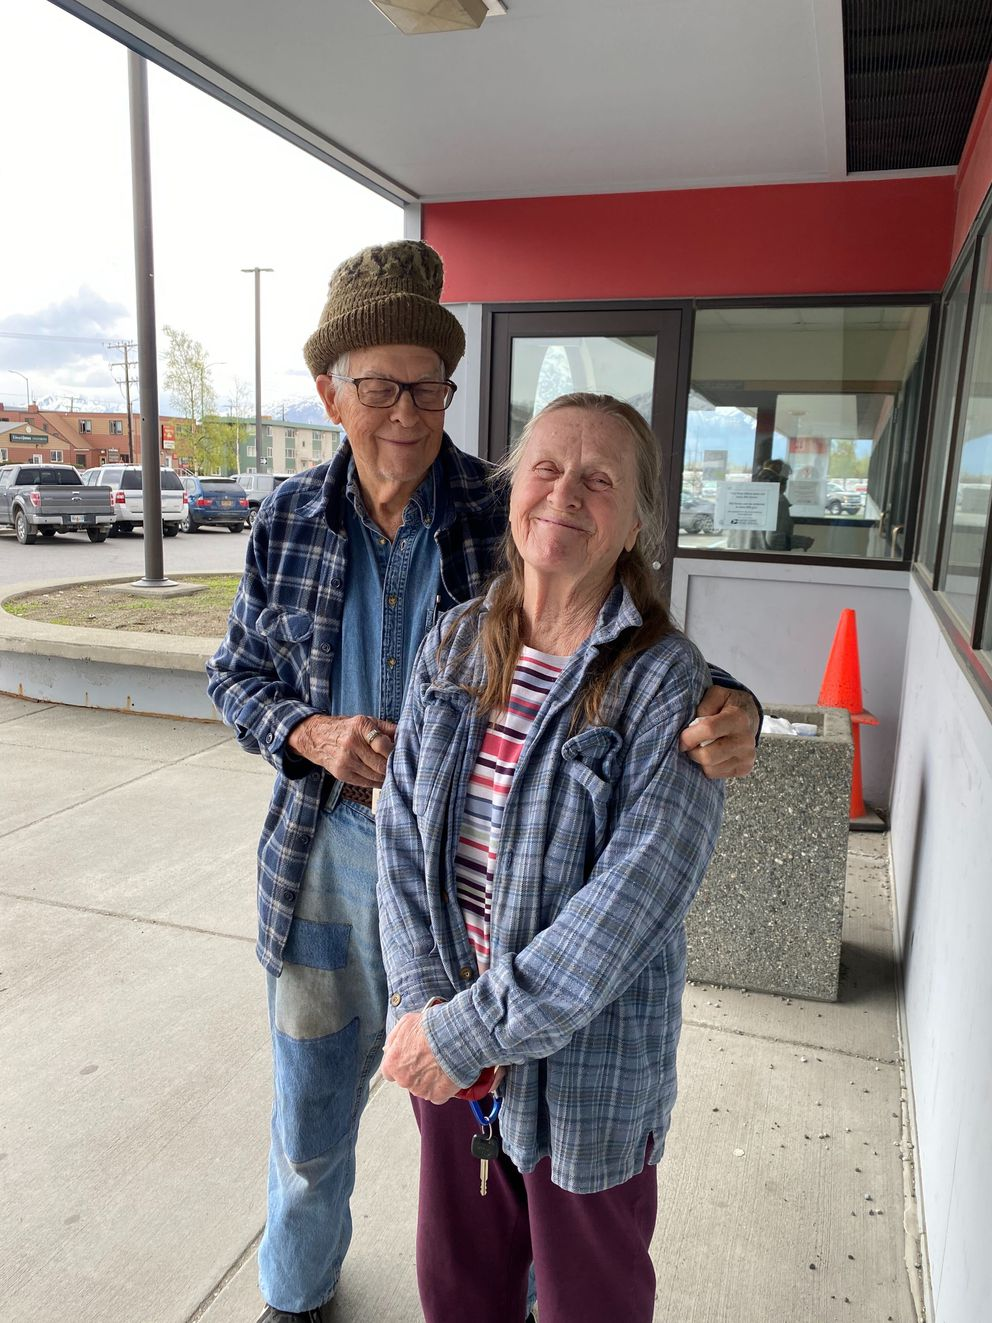 Kenneth Cowart and Sue Houser photographed outside Palmer's post office on Monday, May 11 2020. Houser says she doesn't wear a face mask because she's not afraid of getting COVID-19. Cowart wore a mask but moved it to play harmonica as the couple waited in a long line inside. (Zaz Hollander / ADN)